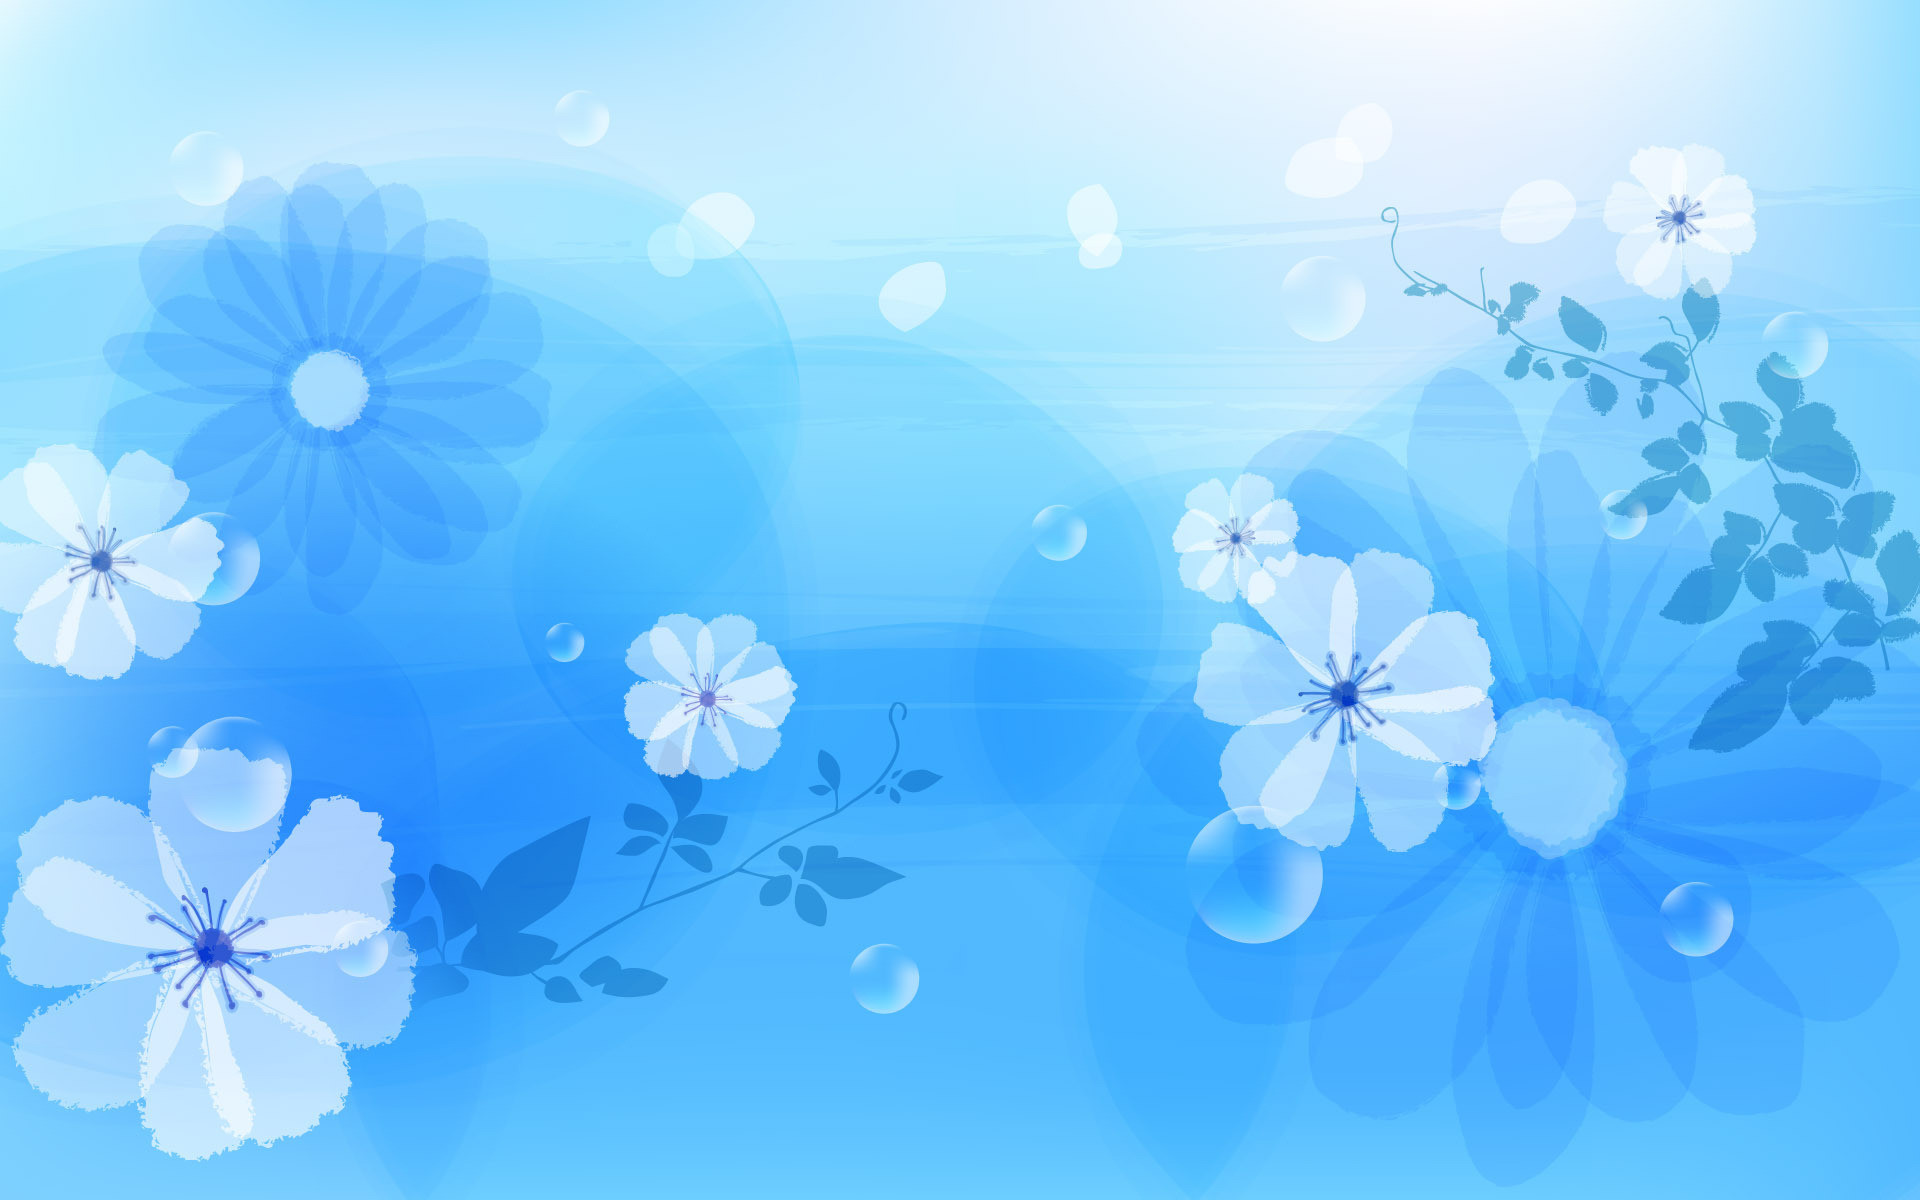 1920x1200 Abstract Flowers Blue Desktop Wallpaper Uploaded by 10Mantra